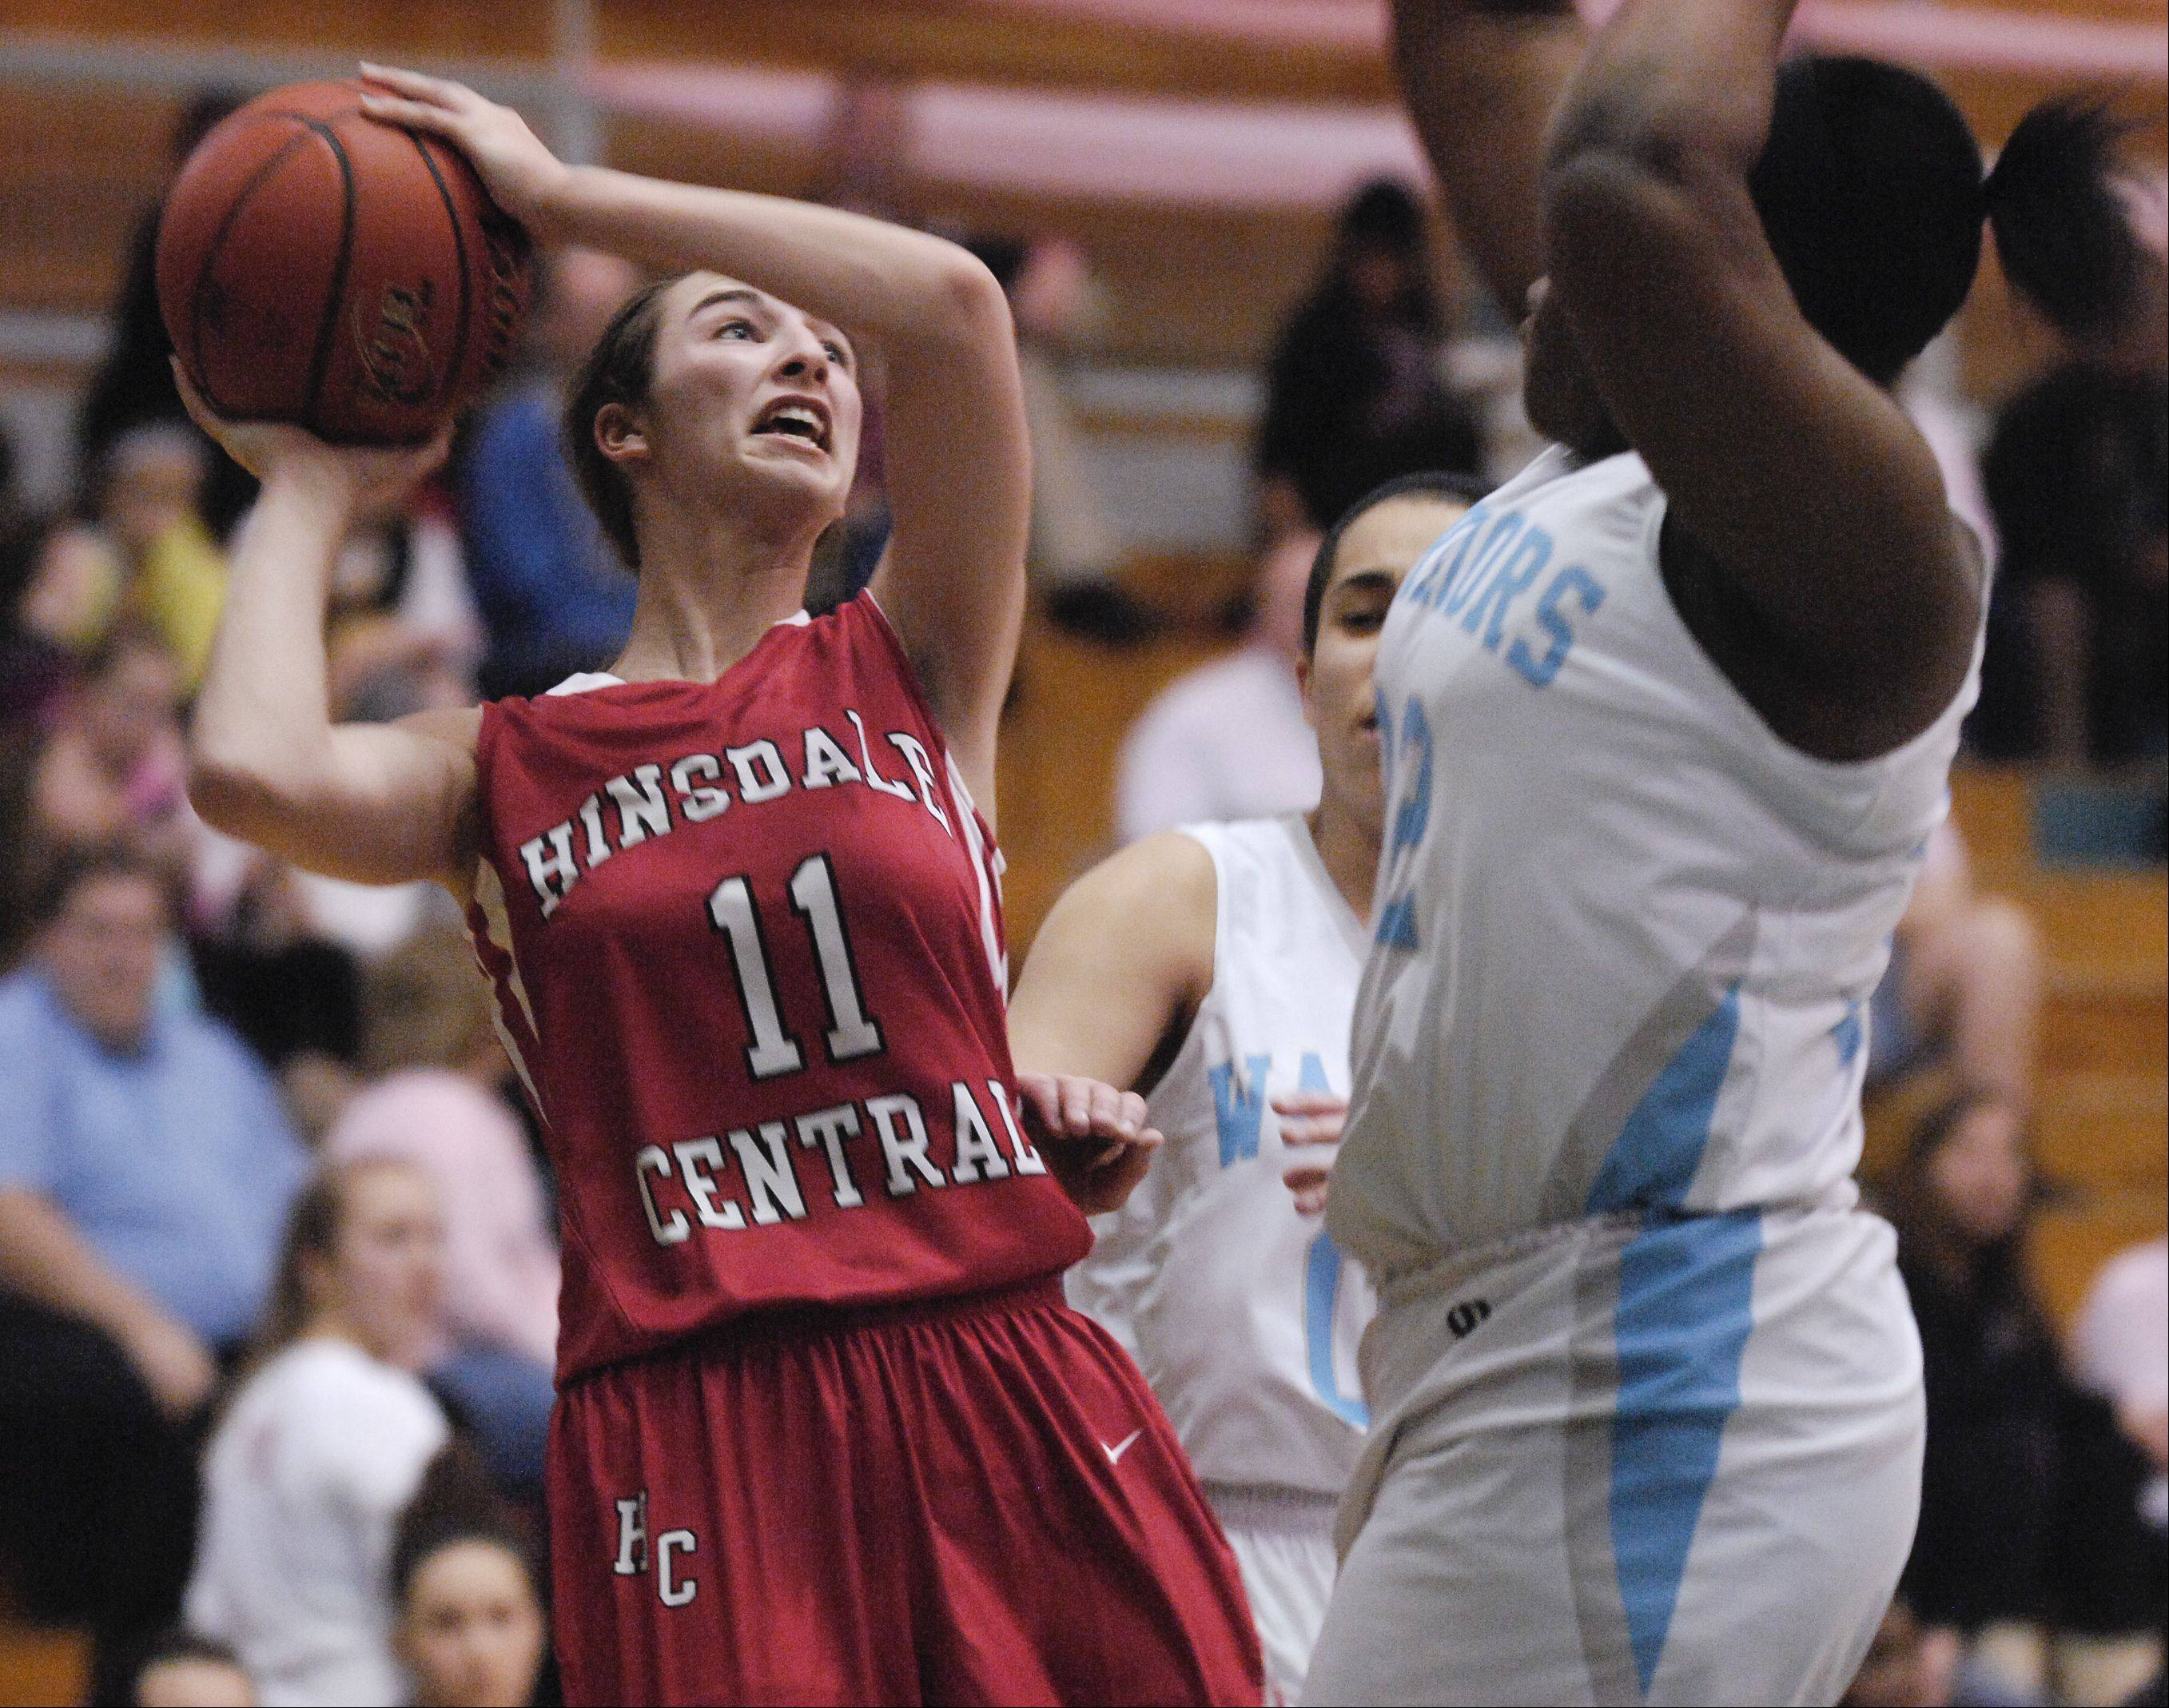 Maddie Roglich of Hinsdale Central looks to take a shot over Erma Udota of Willowbrook Wednesday night during girls basketball in Vila Park.